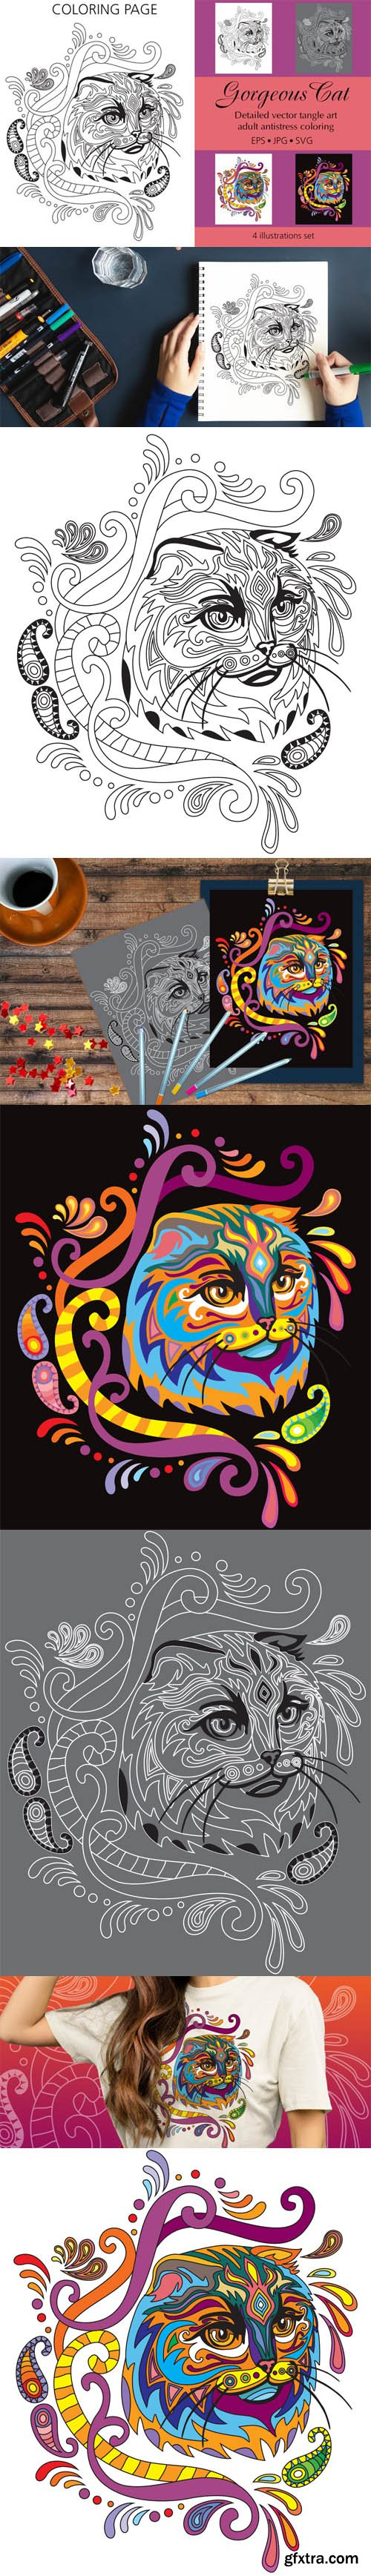 Gorgeous Cat - Detailed Vector Tangle Art - Adult Antistress Coloring